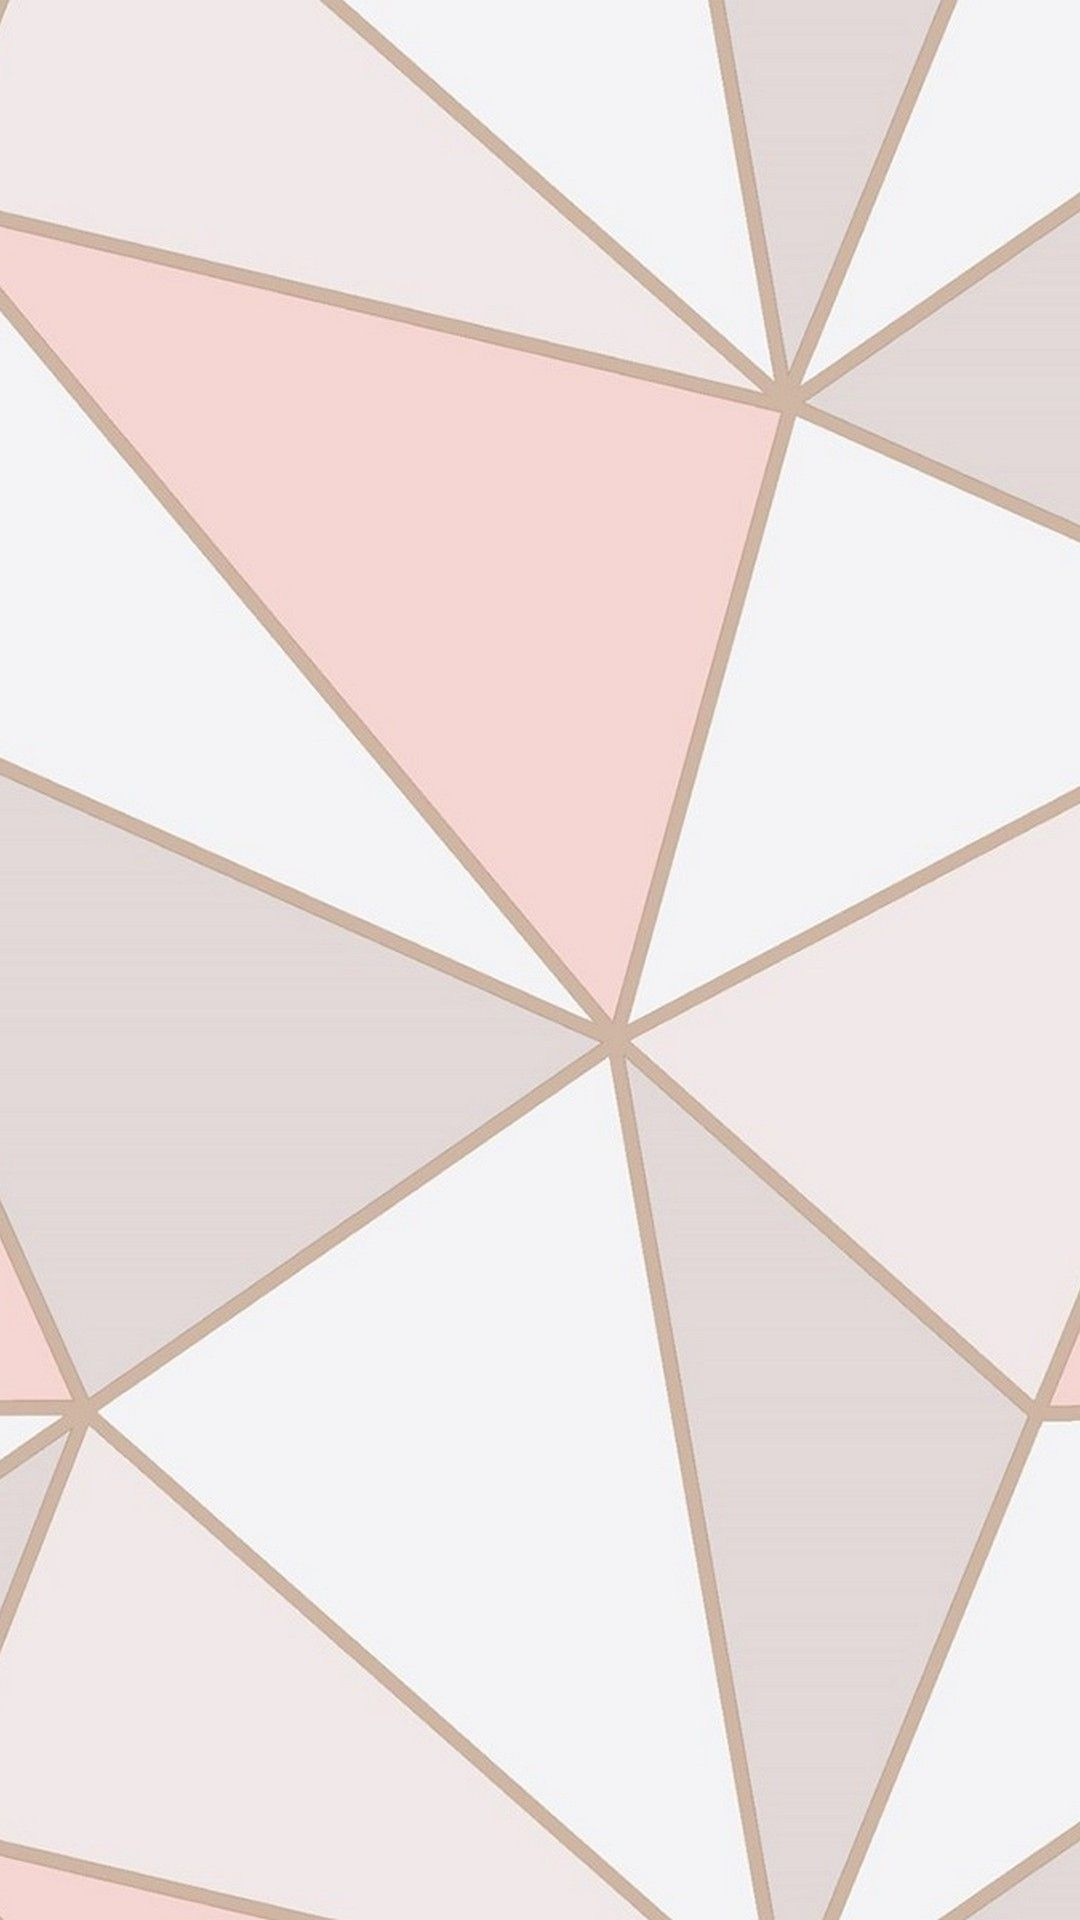 Geometric Grey And Rose Gold Background In 2020 Gold Wallpaper Iphone Gold Wallpaper Android Gold Wallpaper Hd